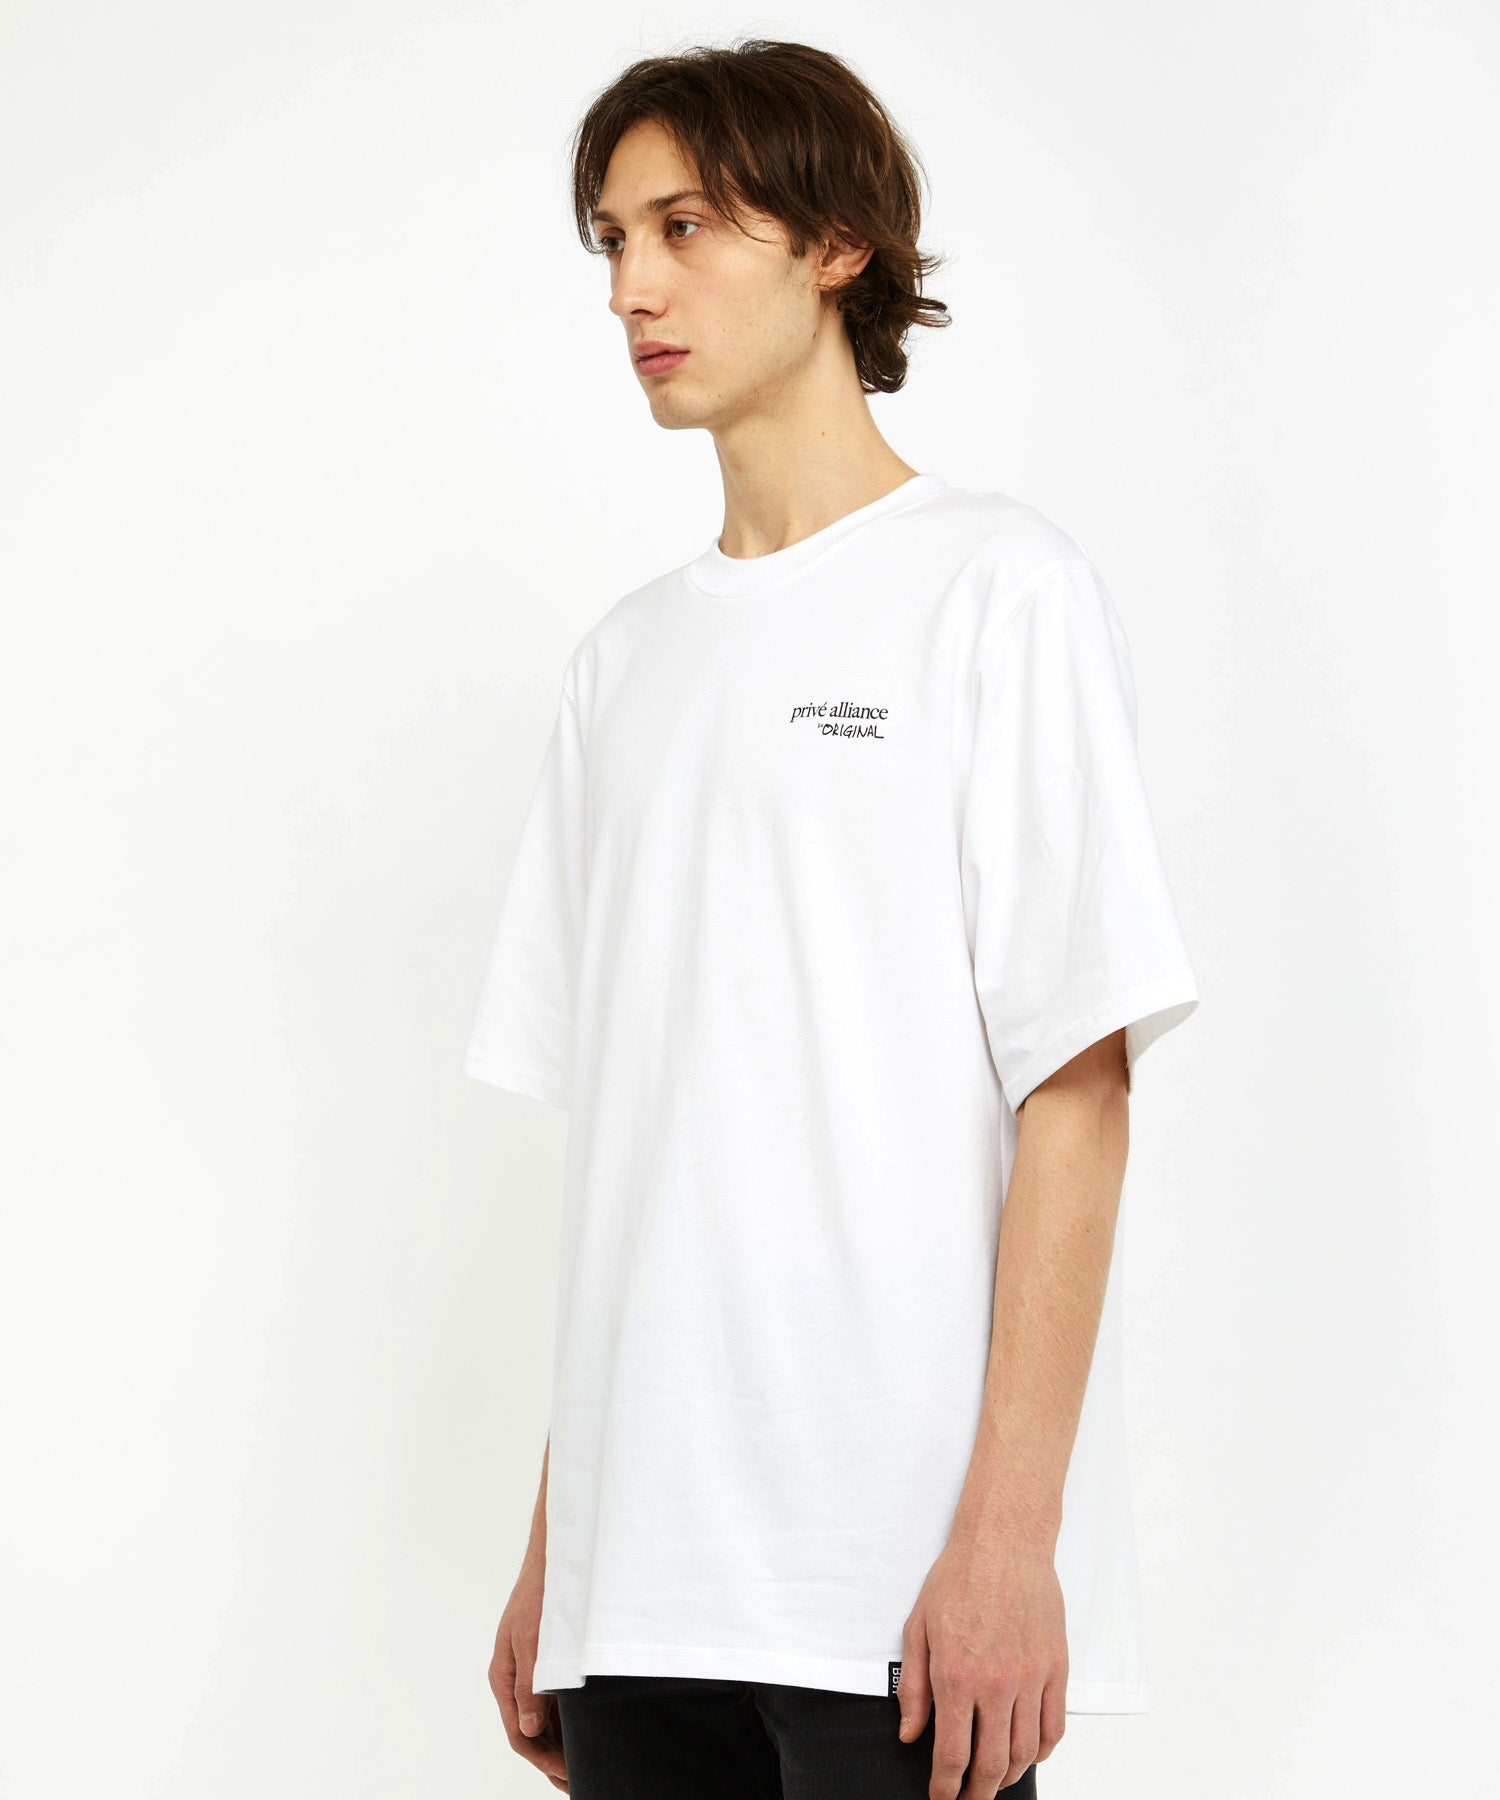 Privé Alliance Men's Escape T-shirt White